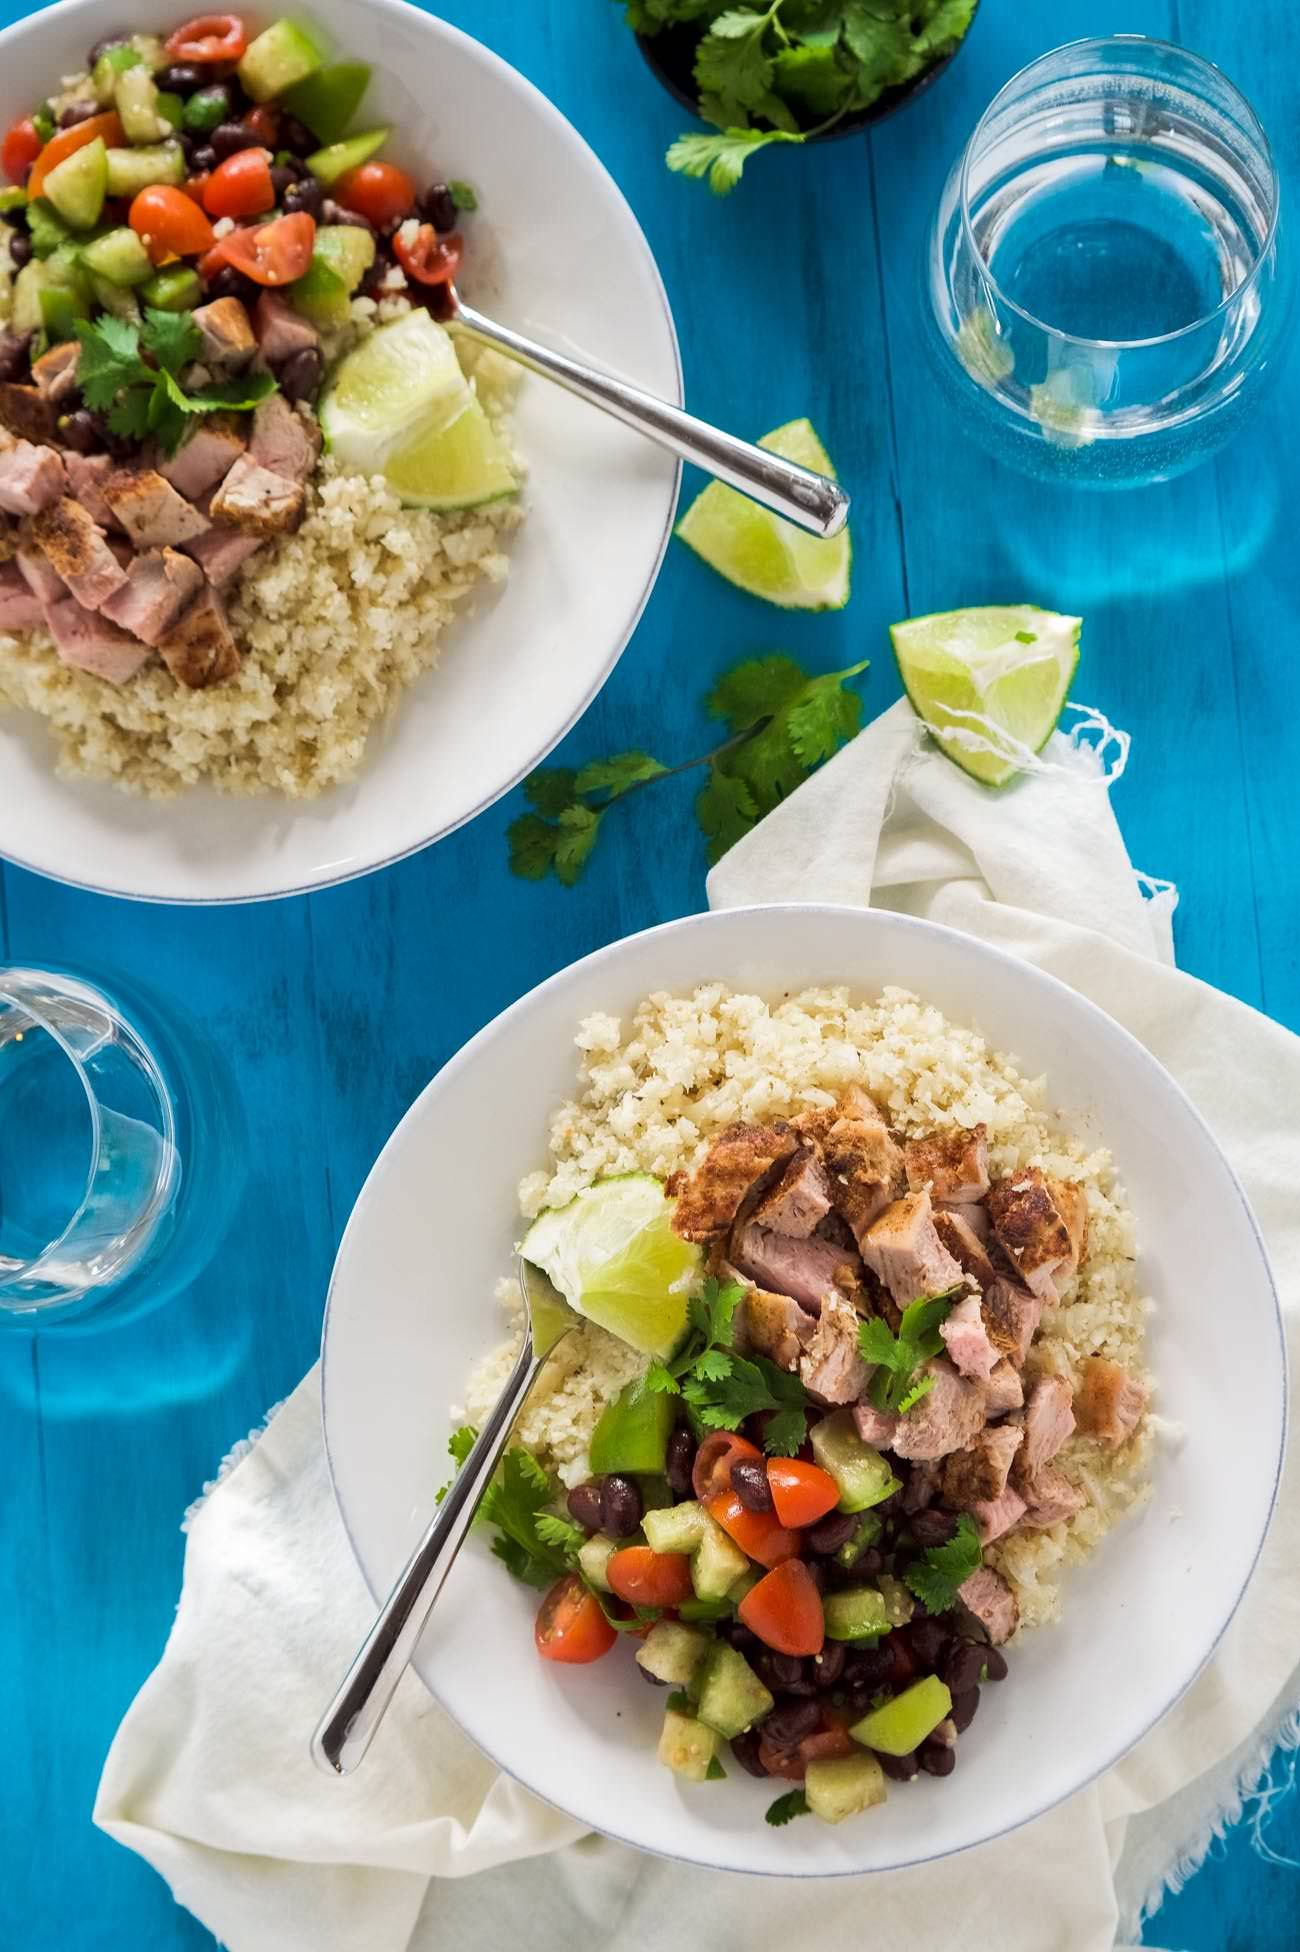 Chipotle Pork Carnita Burrito Bowls with Cumin Lime Rice are a healthy, homemade tex mex favorite! Filled with juicy, spiced pork, a homemade black bean salsa and lightened up cumin lime cauliflower rice!